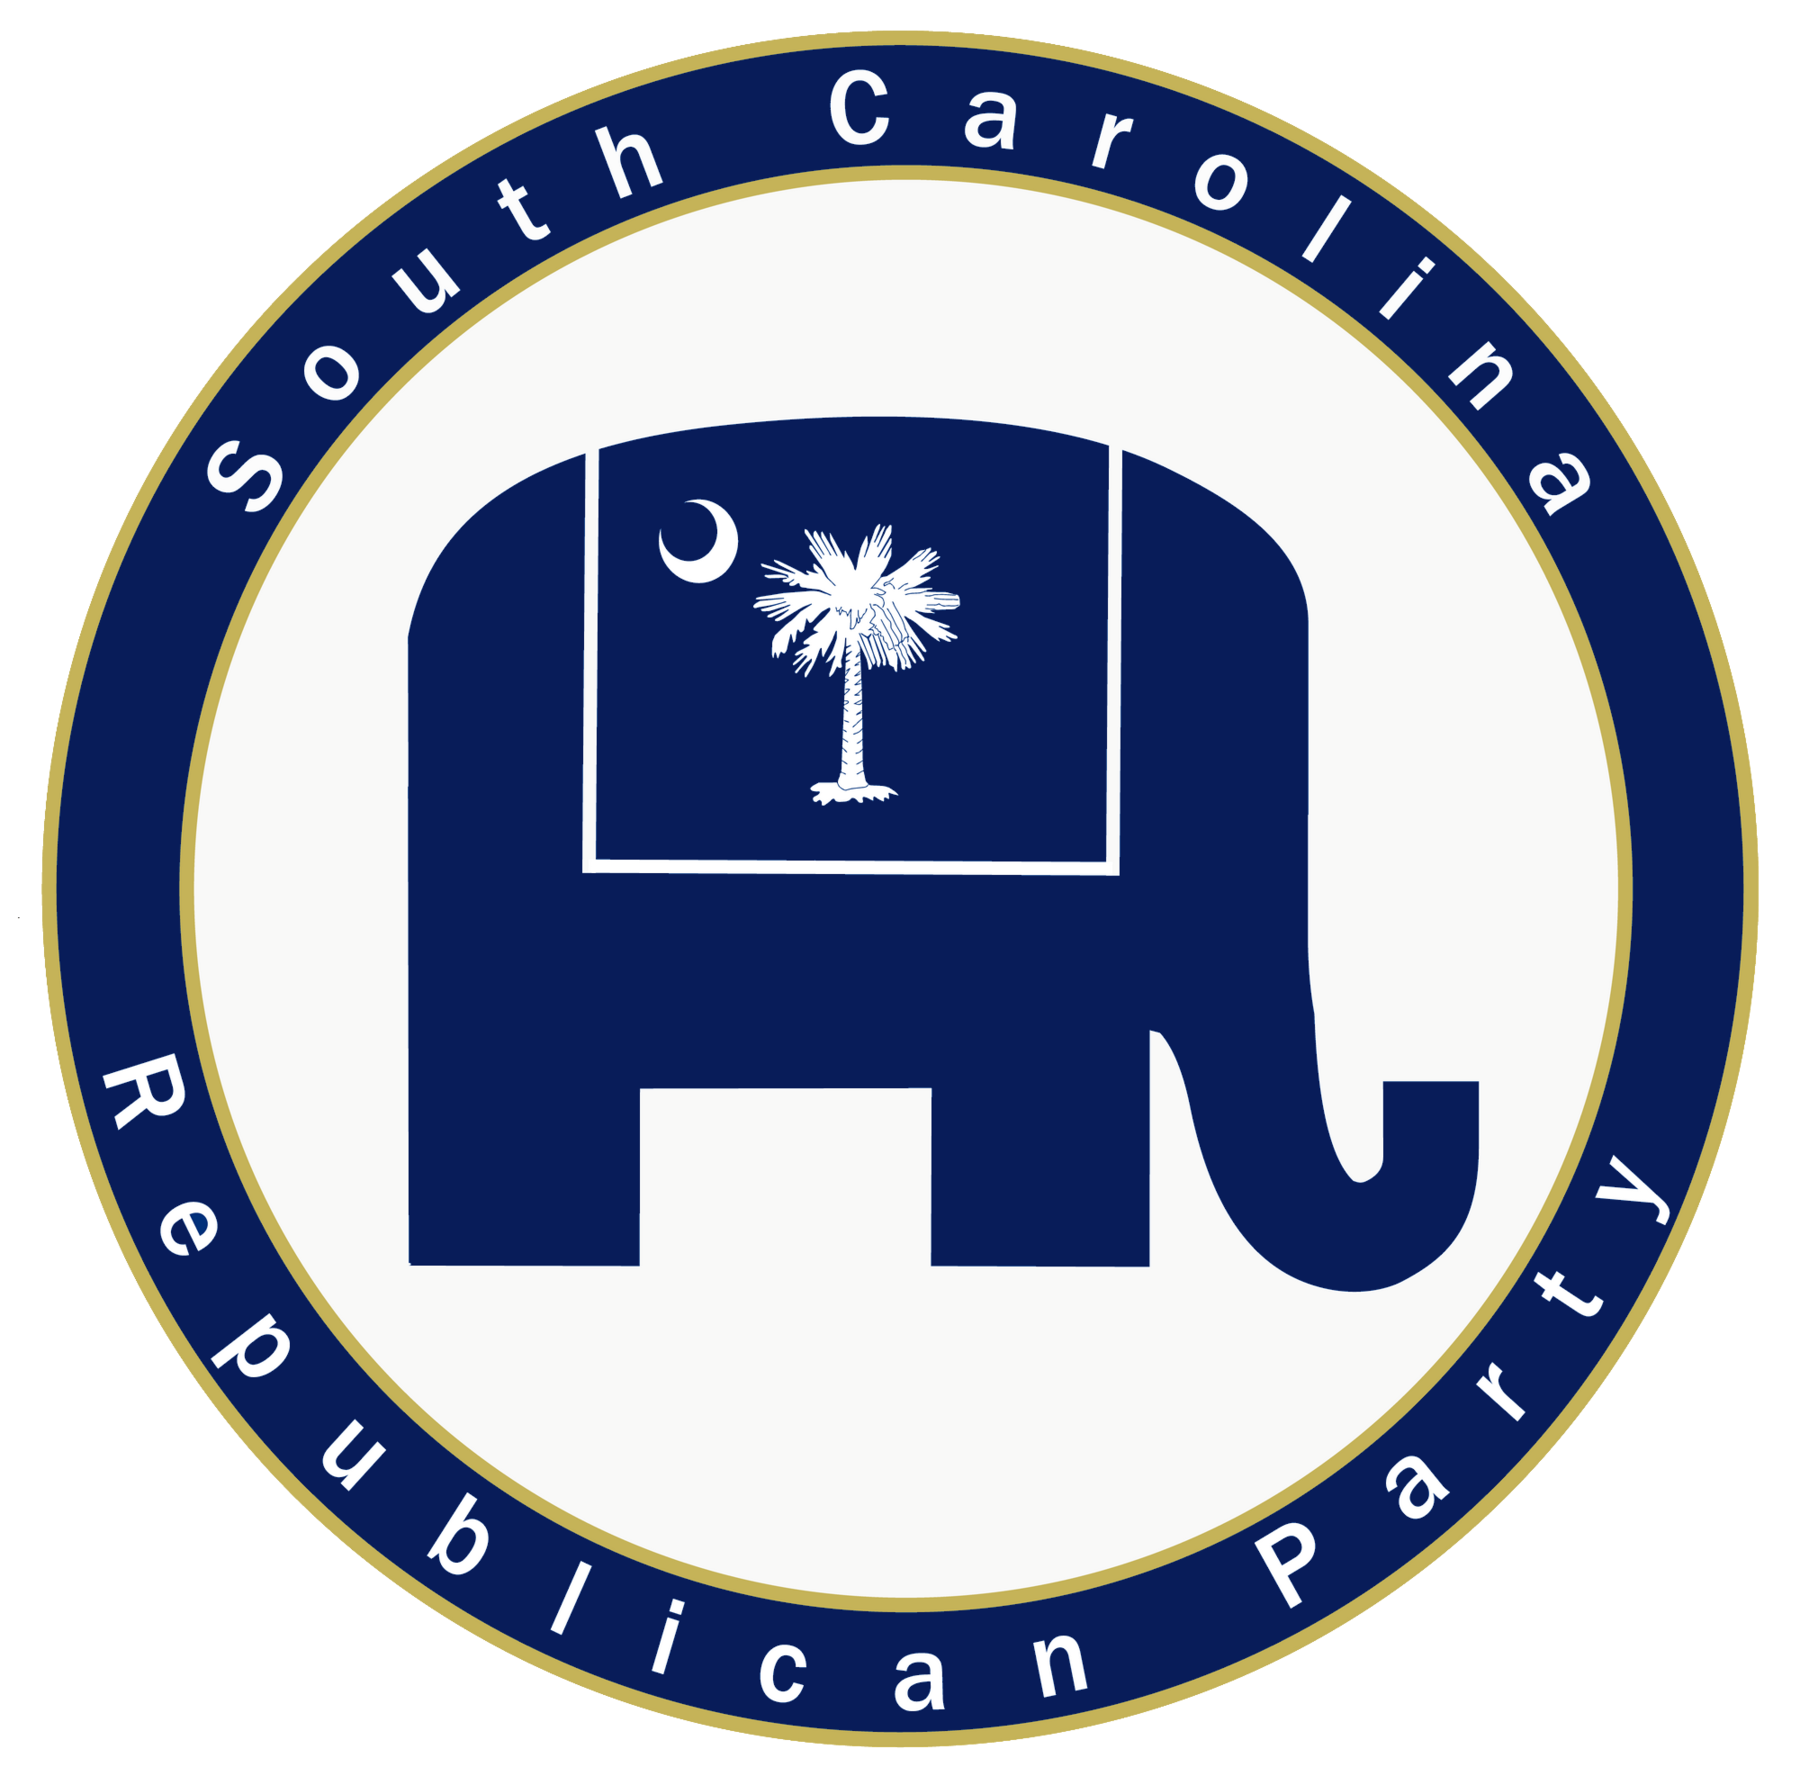 South Carolina Republican Party: Chairman's Circle